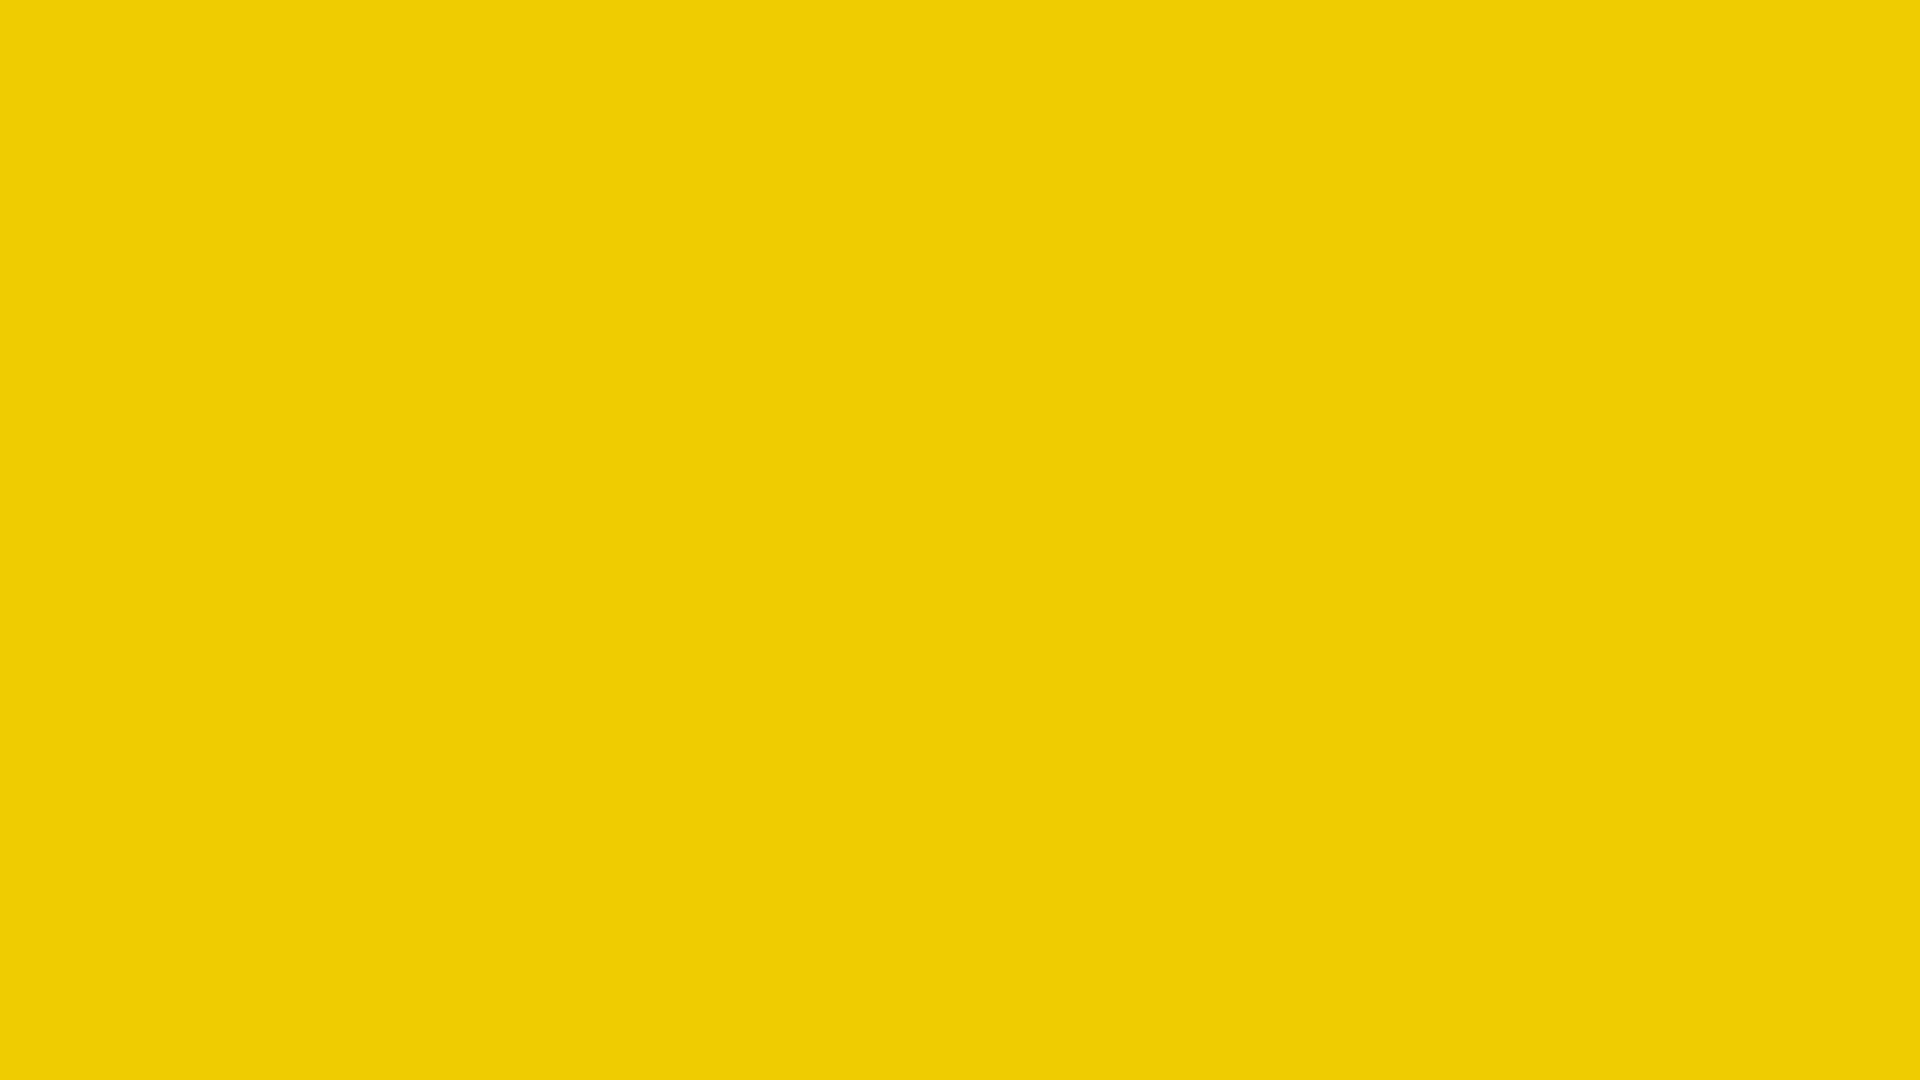 1920x1080 Yellow Munsell Solid Color Background